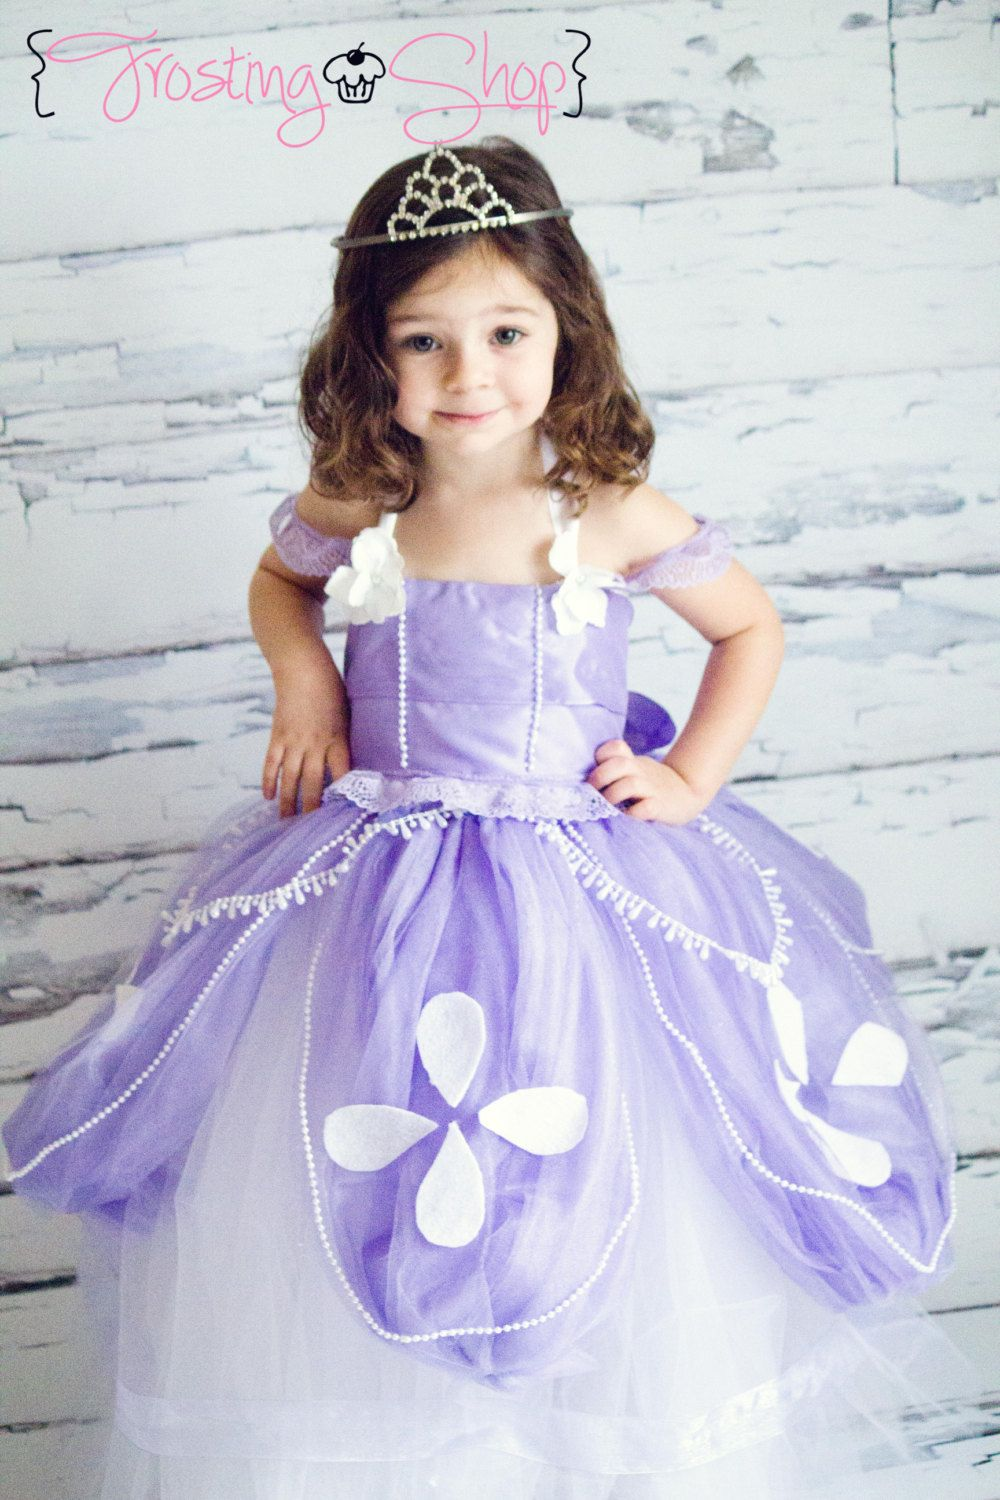 sofia the first tutu dress costume. $100.00, via etsy. | princess